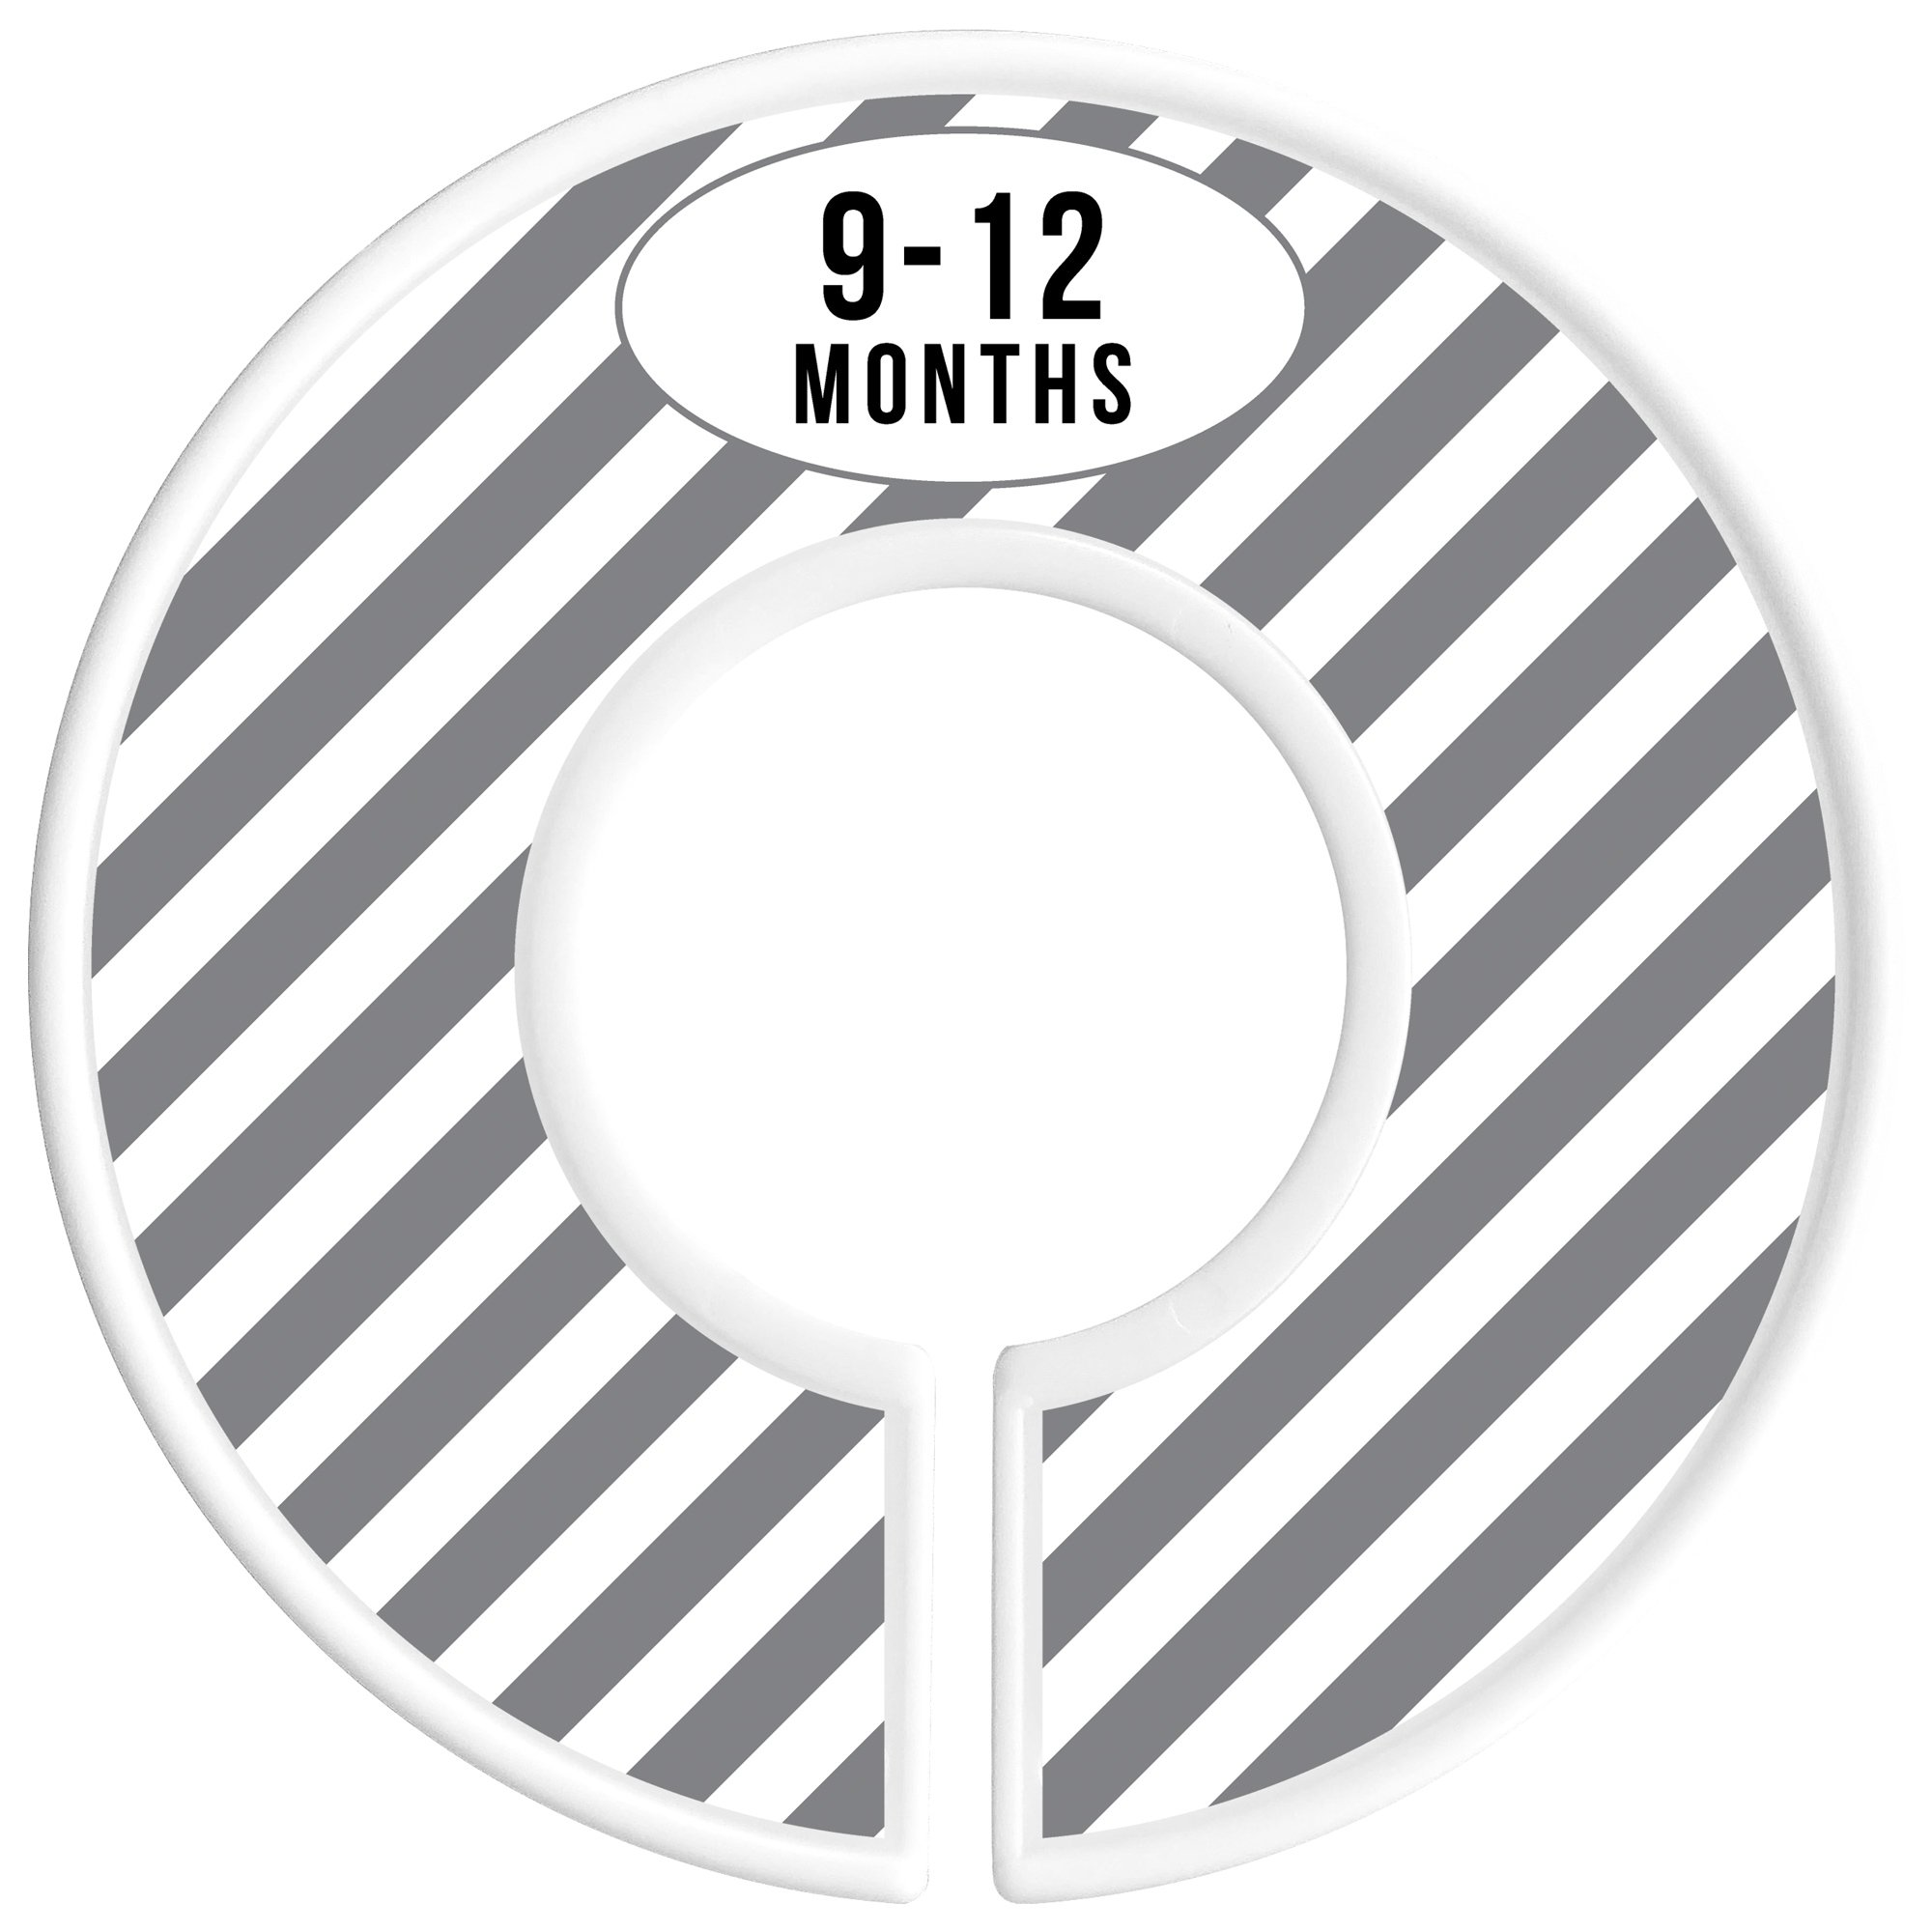 Delicush Baby Closet Dividers, Stripe, Chevron, Set of 6 Size Organizers, Nursery Closet Organizers, Baby Size Dividers, Glossy Finish, Boy, Girl (Grey) by DELICUSH (Image #6)